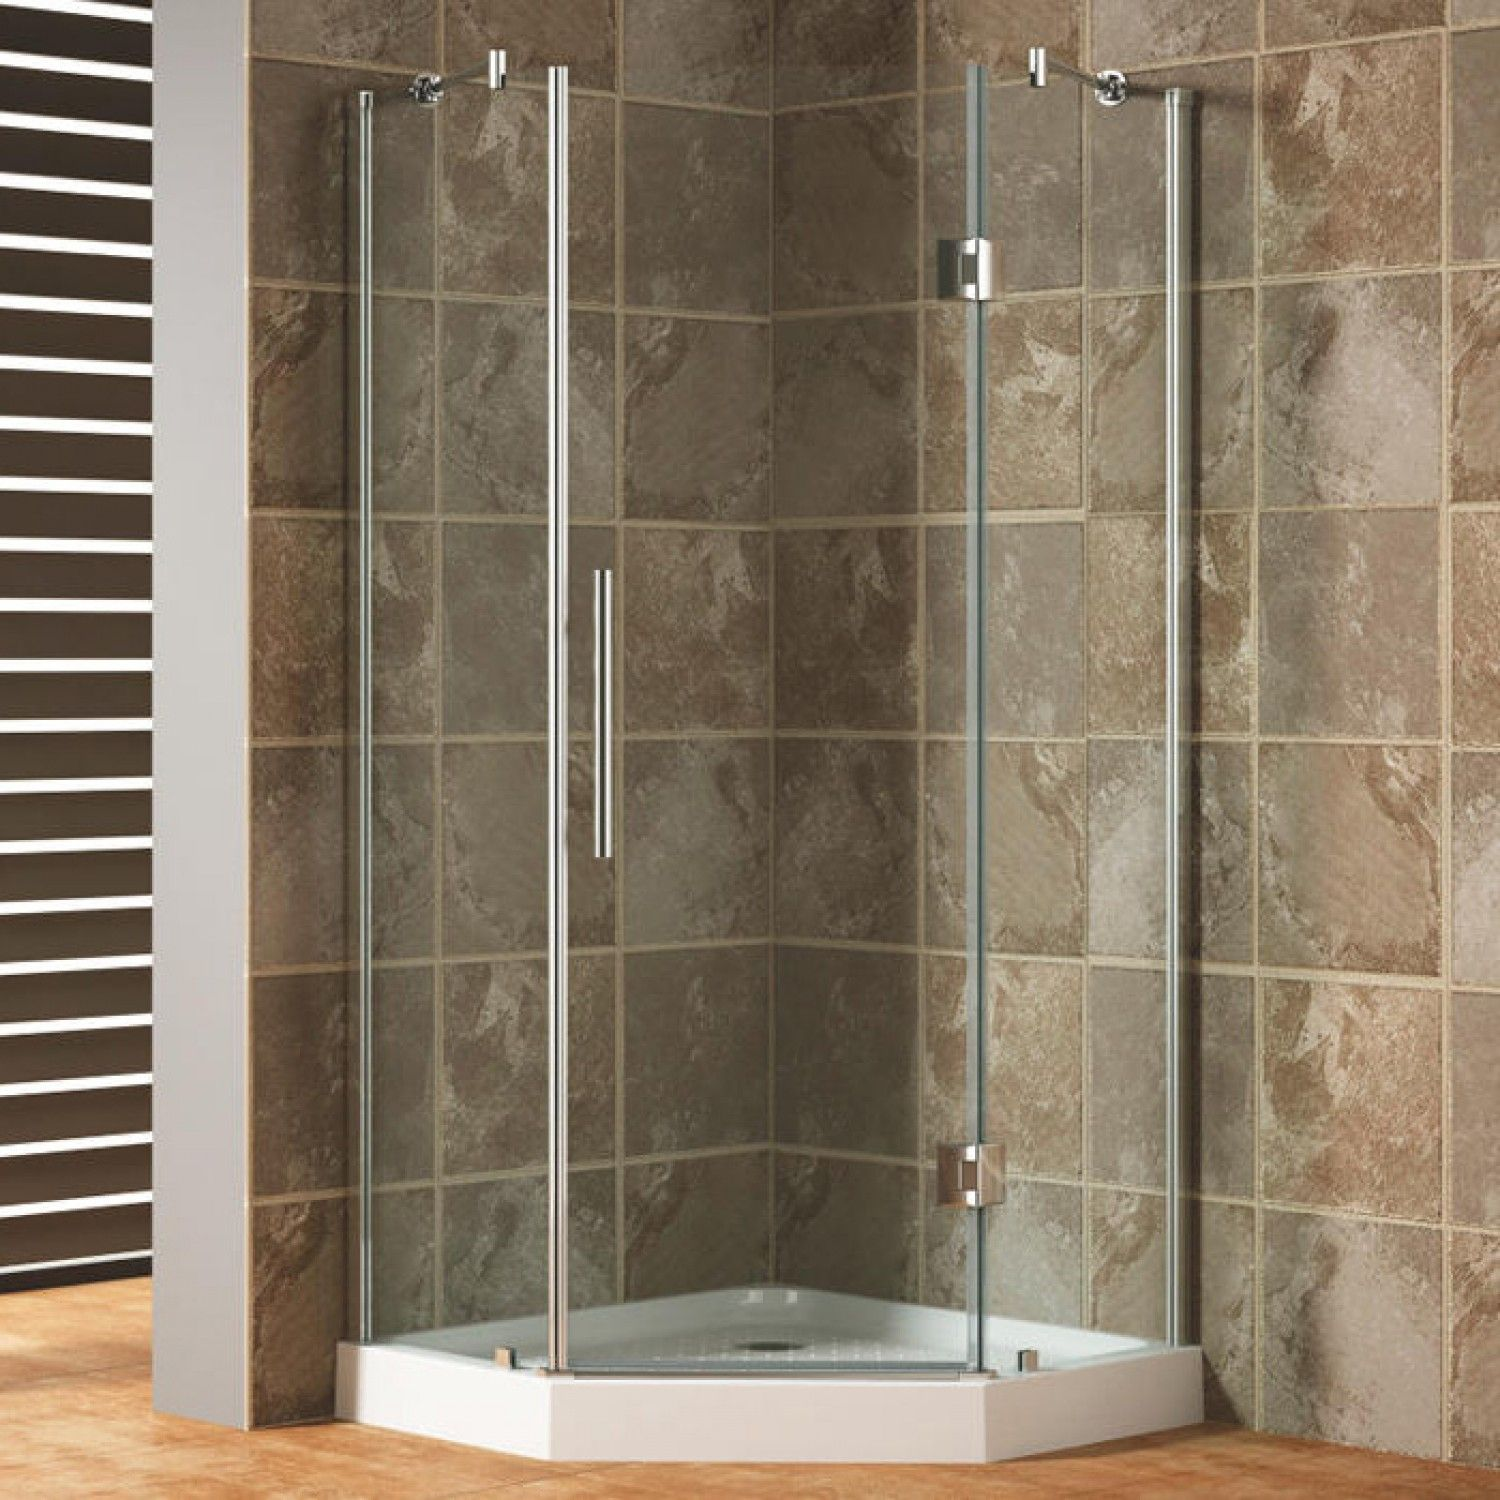 42 X 42 Frameless Neo Angle Shower Enclosure Without Tray